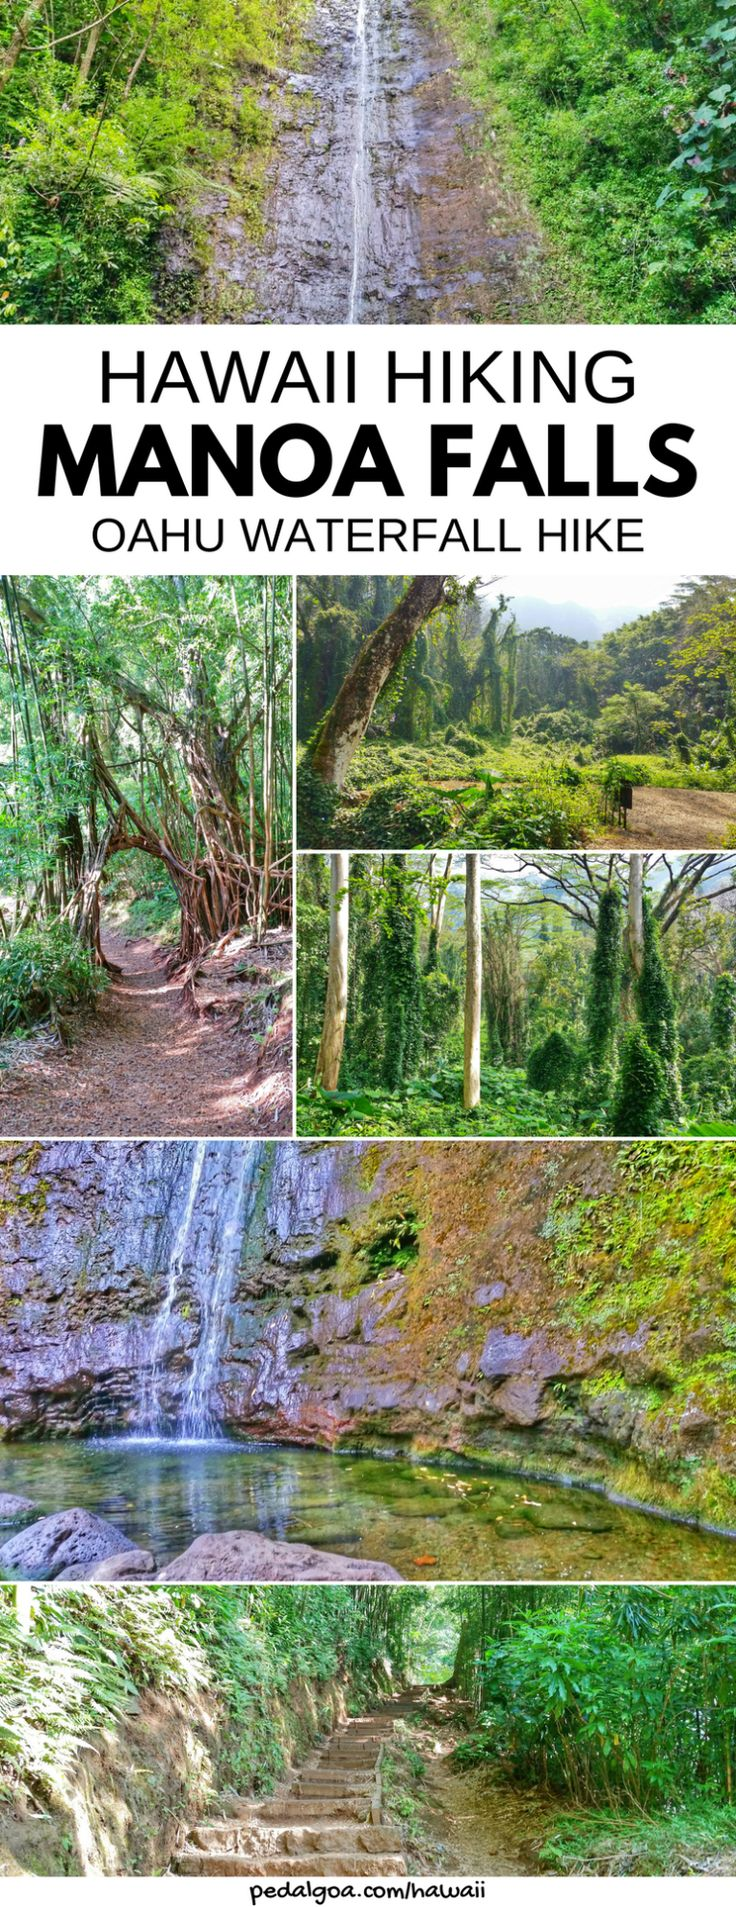 Manoa Falls Trail hike: Waterfalls in Oahu with one of best waterfall hikes in Hawaii. US hiking trails in Hawaii, tons of hikes on Hawaii vacation, a few Oahu waterfall hikes too. Manoa Falls is near Honolulu and Waikiki, and some people go swimming. Day away from beaches, snorkeling, shopping, food. Outdoor travel destinations, activities, ideas for bucket list for budget adventures! Think about what to wear, what to pack for hiking to add to Hawaii packing list... #hawaii #oahu